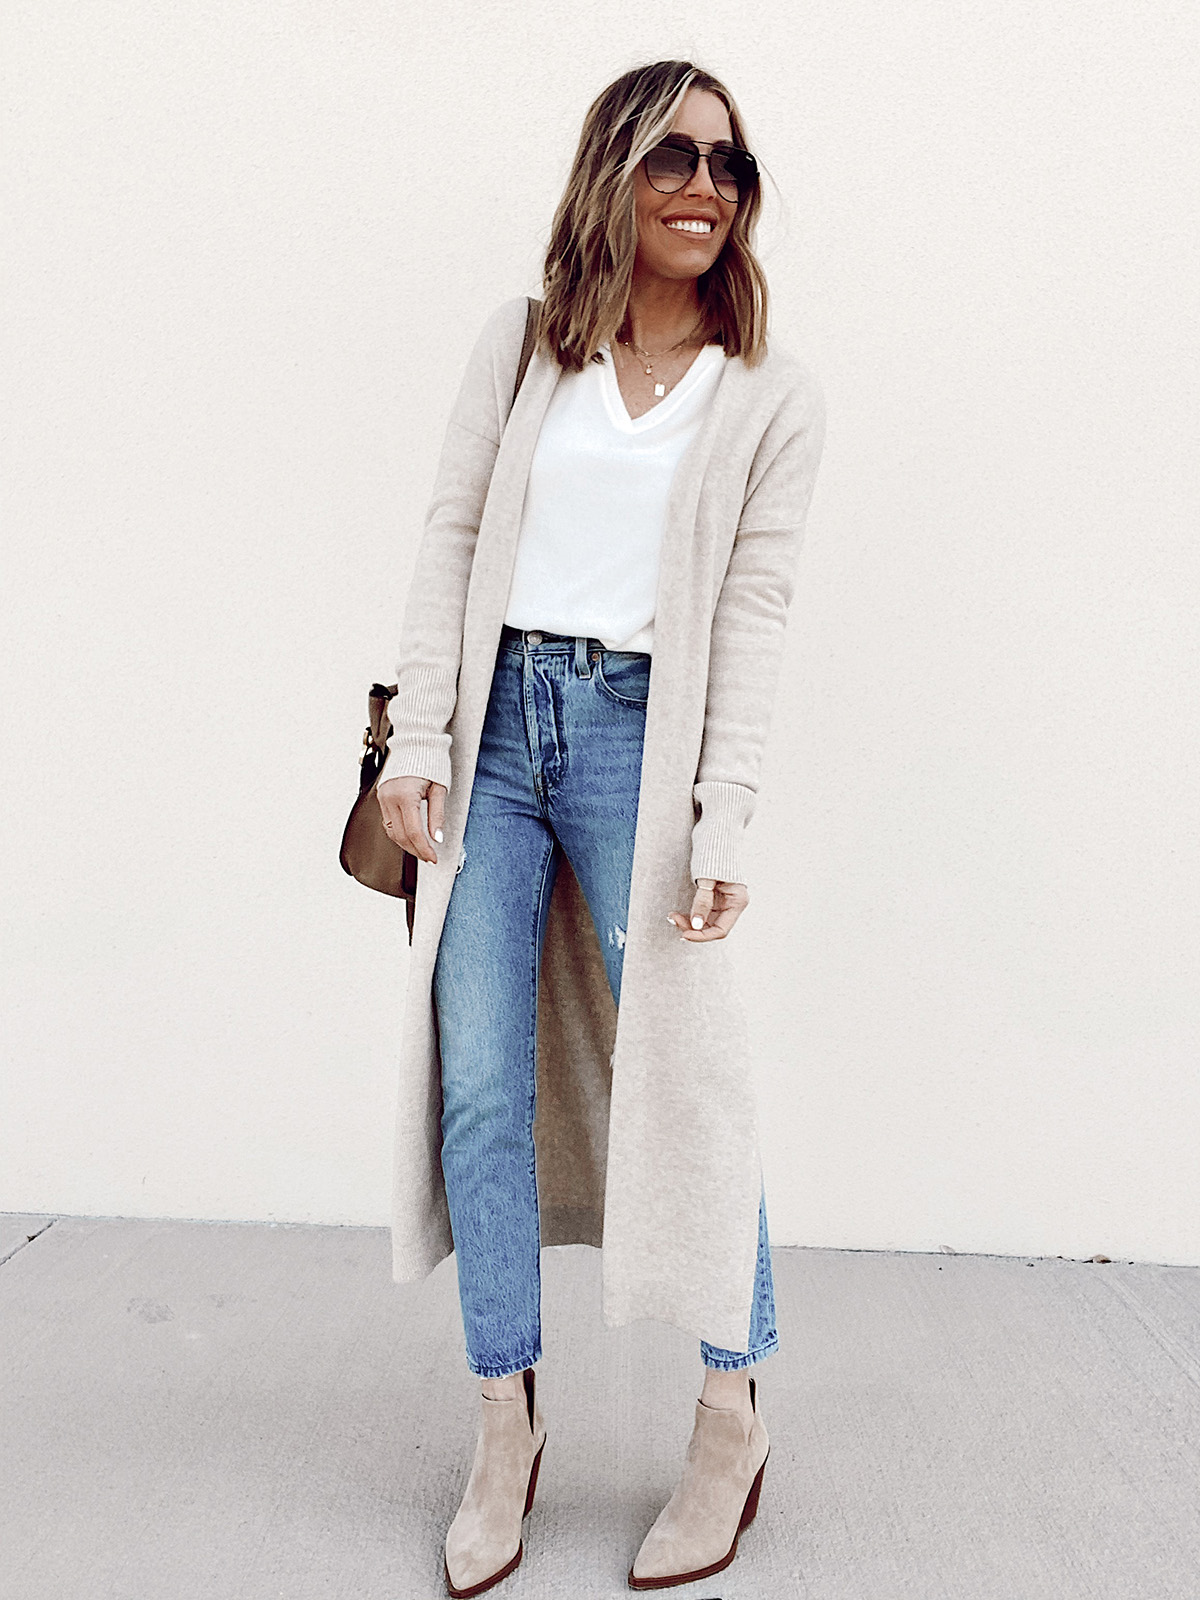 Best Ways Wear Long Cardigan Sweater